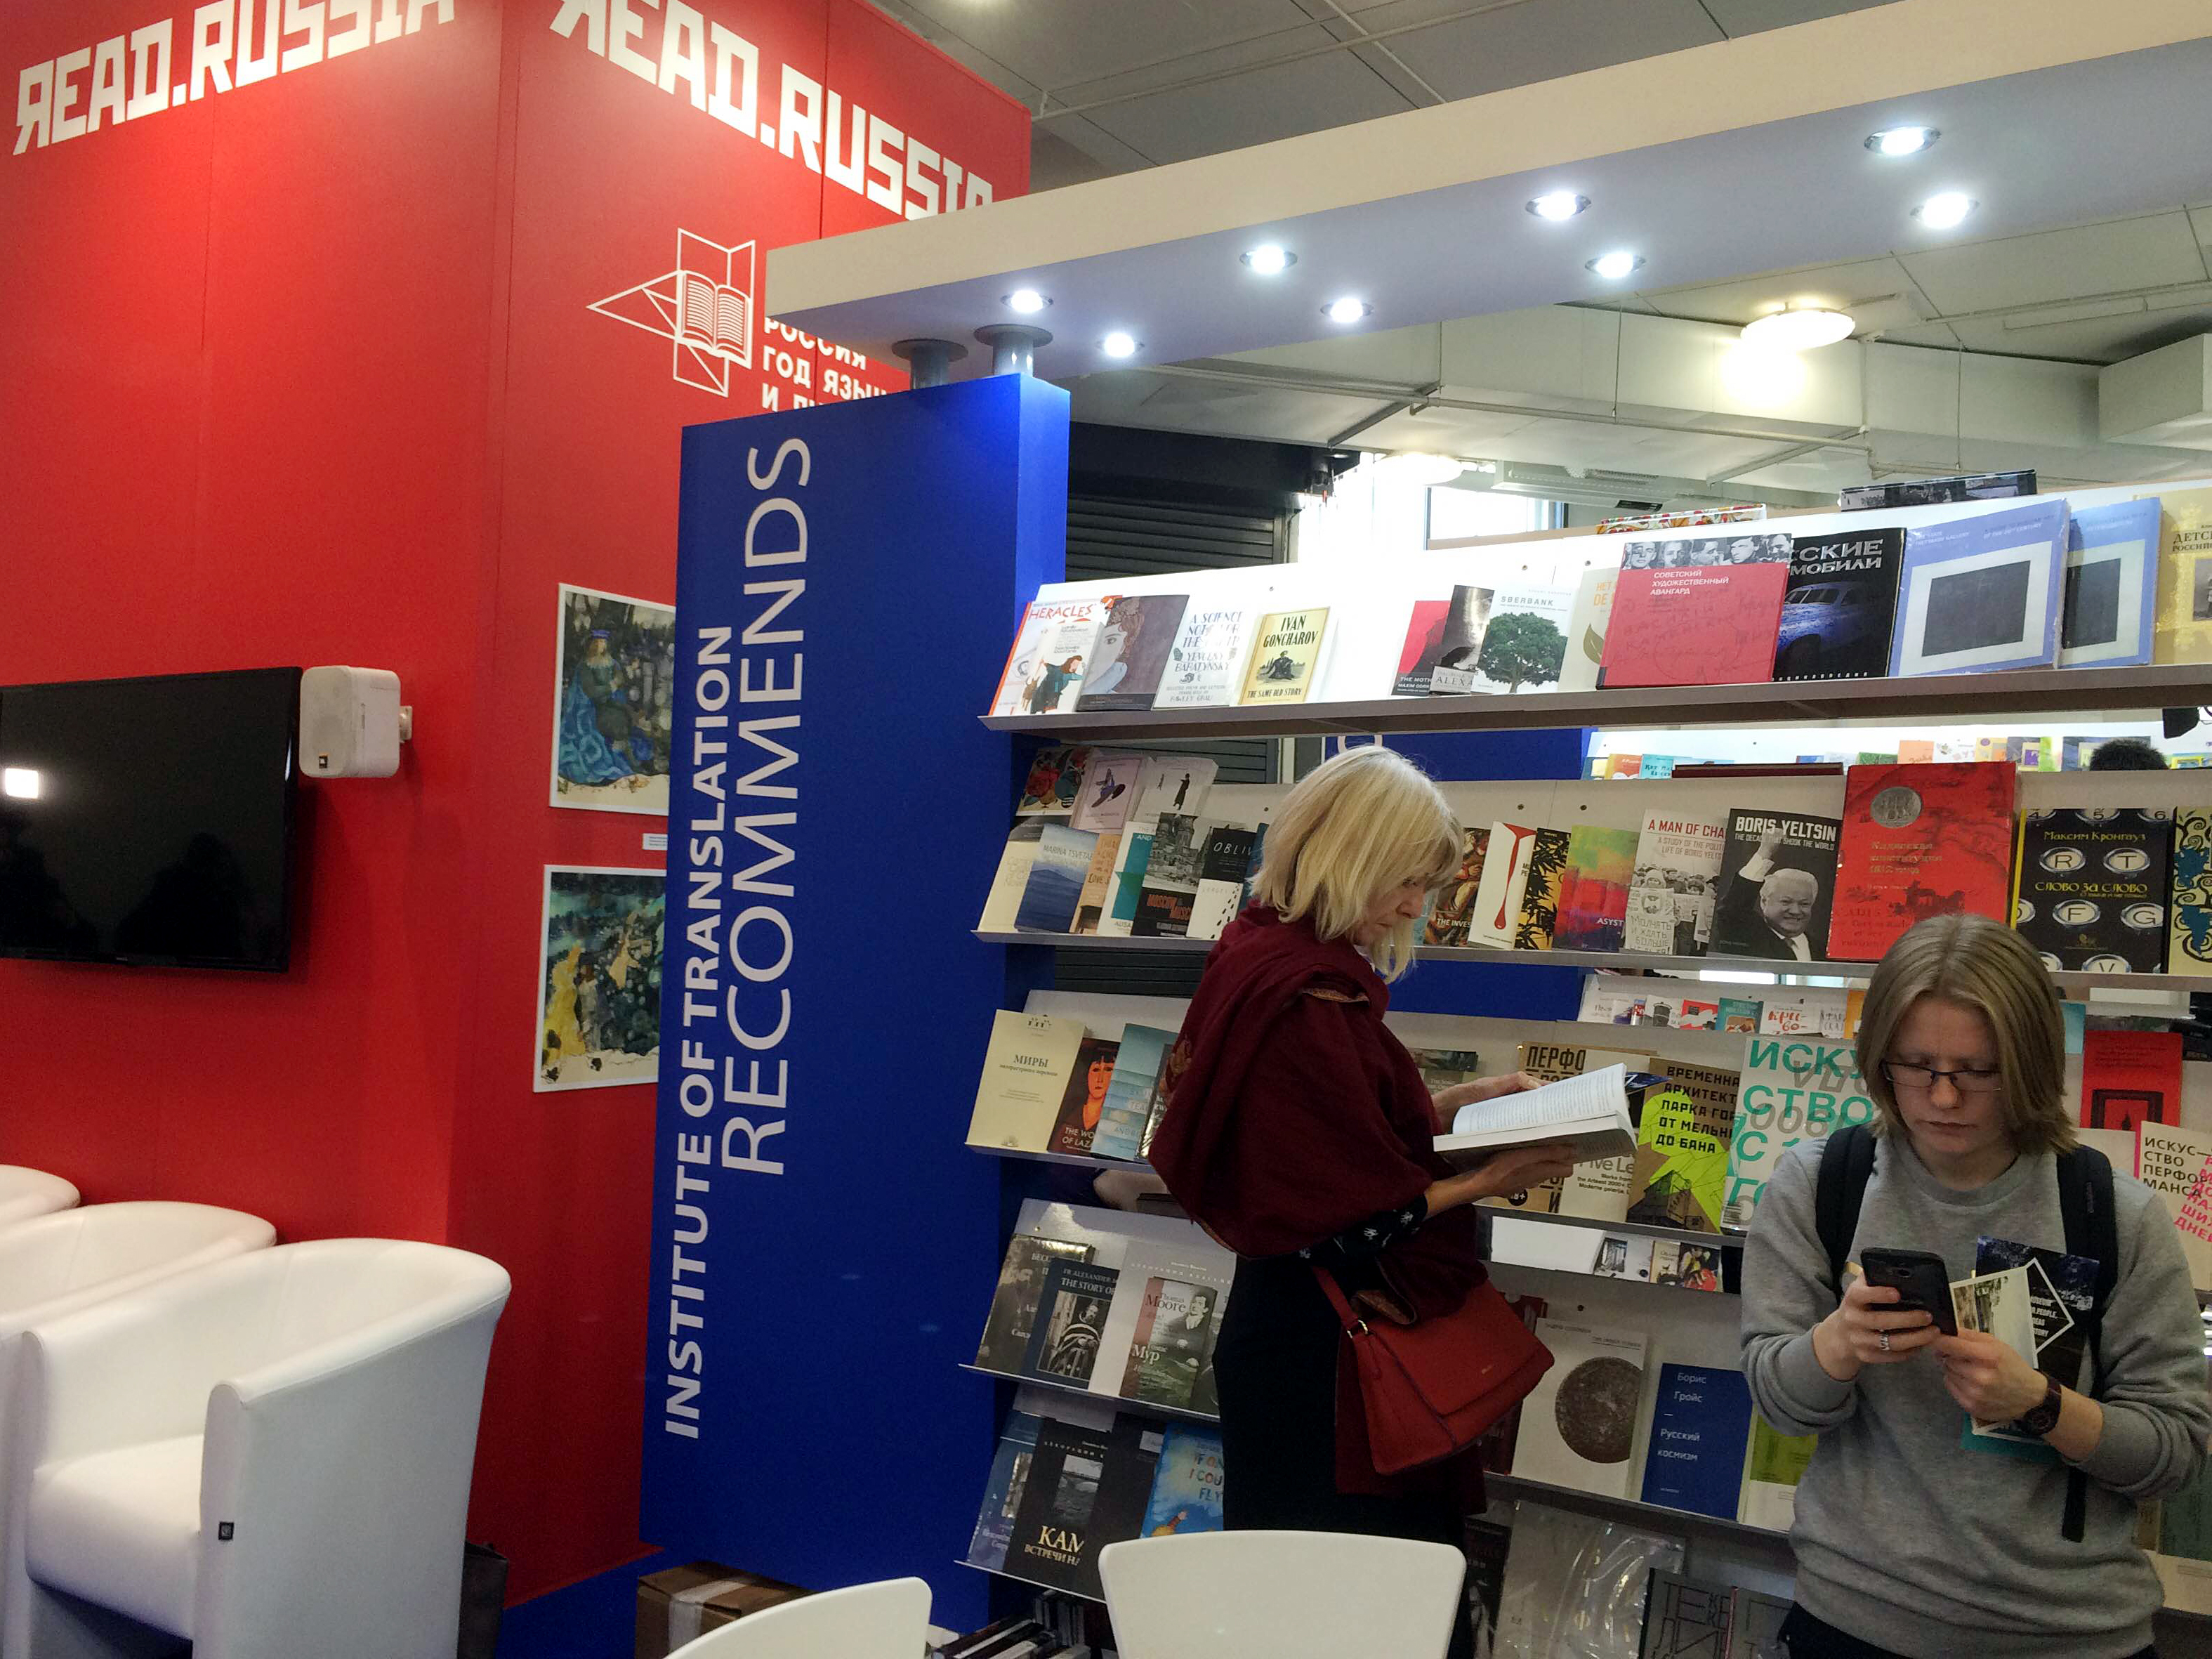 Russian stand at the London Book Fair 2016.